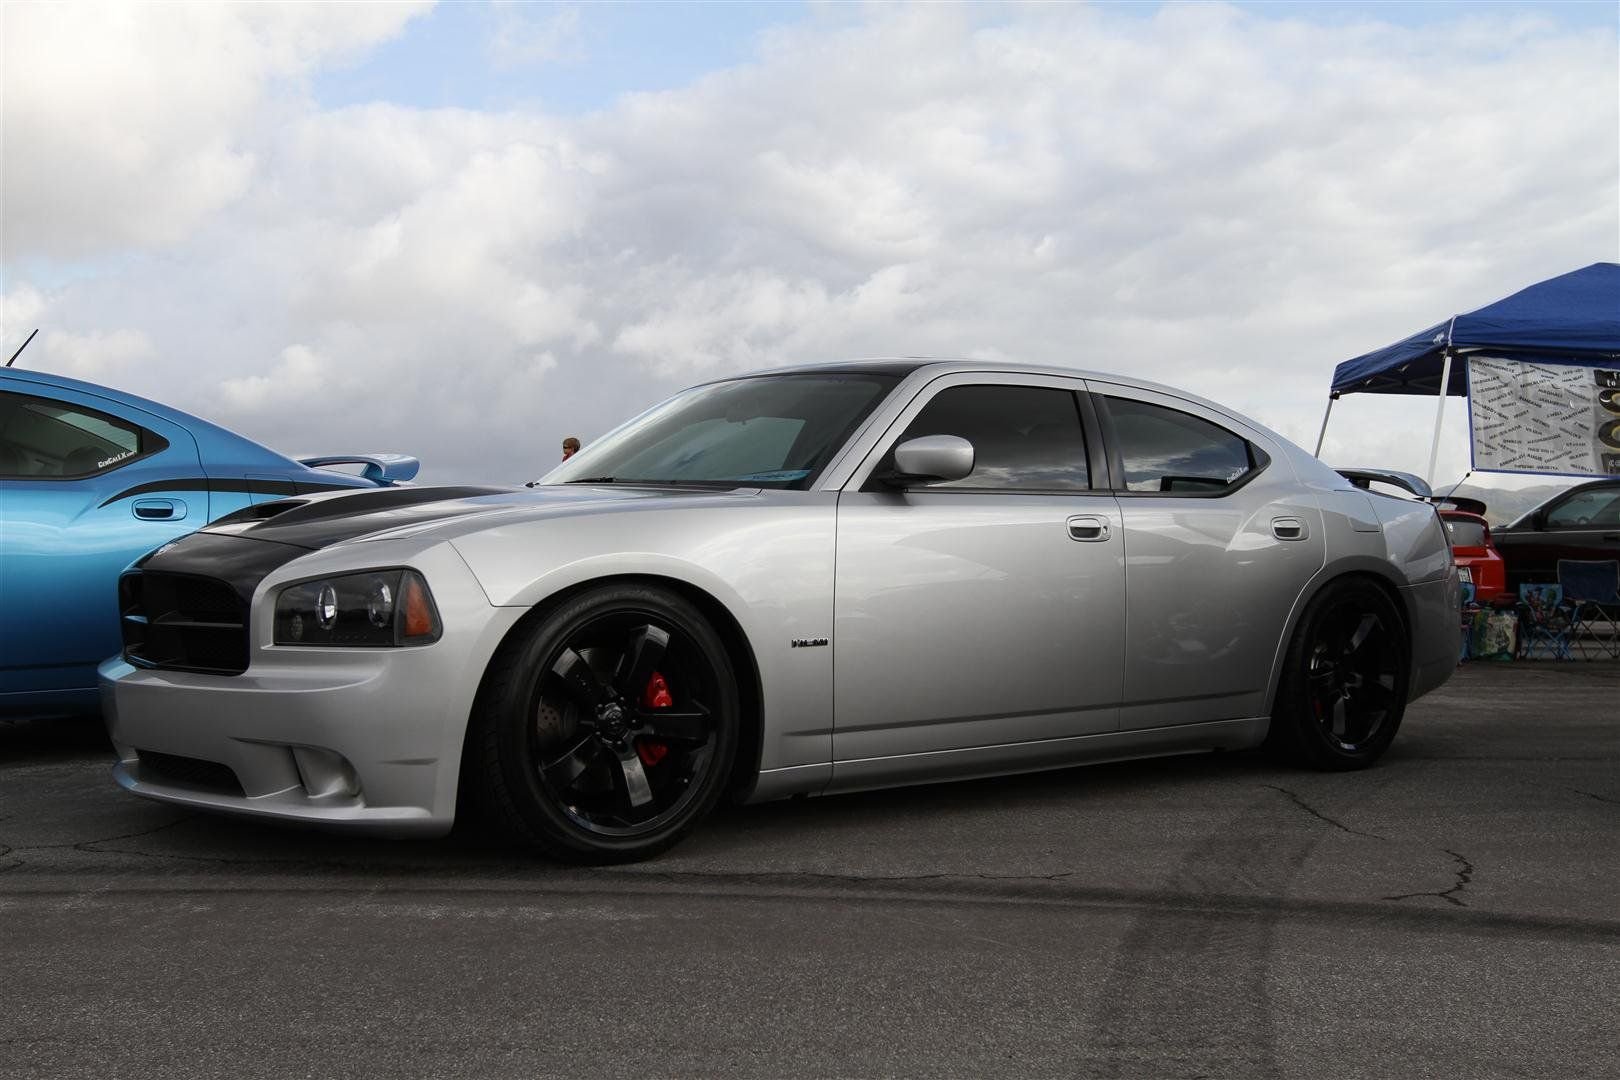 Dodge Charger Srt Black Chrome Rims With Red Calipers It S A Fight Between These And The Dodge Viper Rims Dodge Charger Srt Dodge Charger Dodge Viper